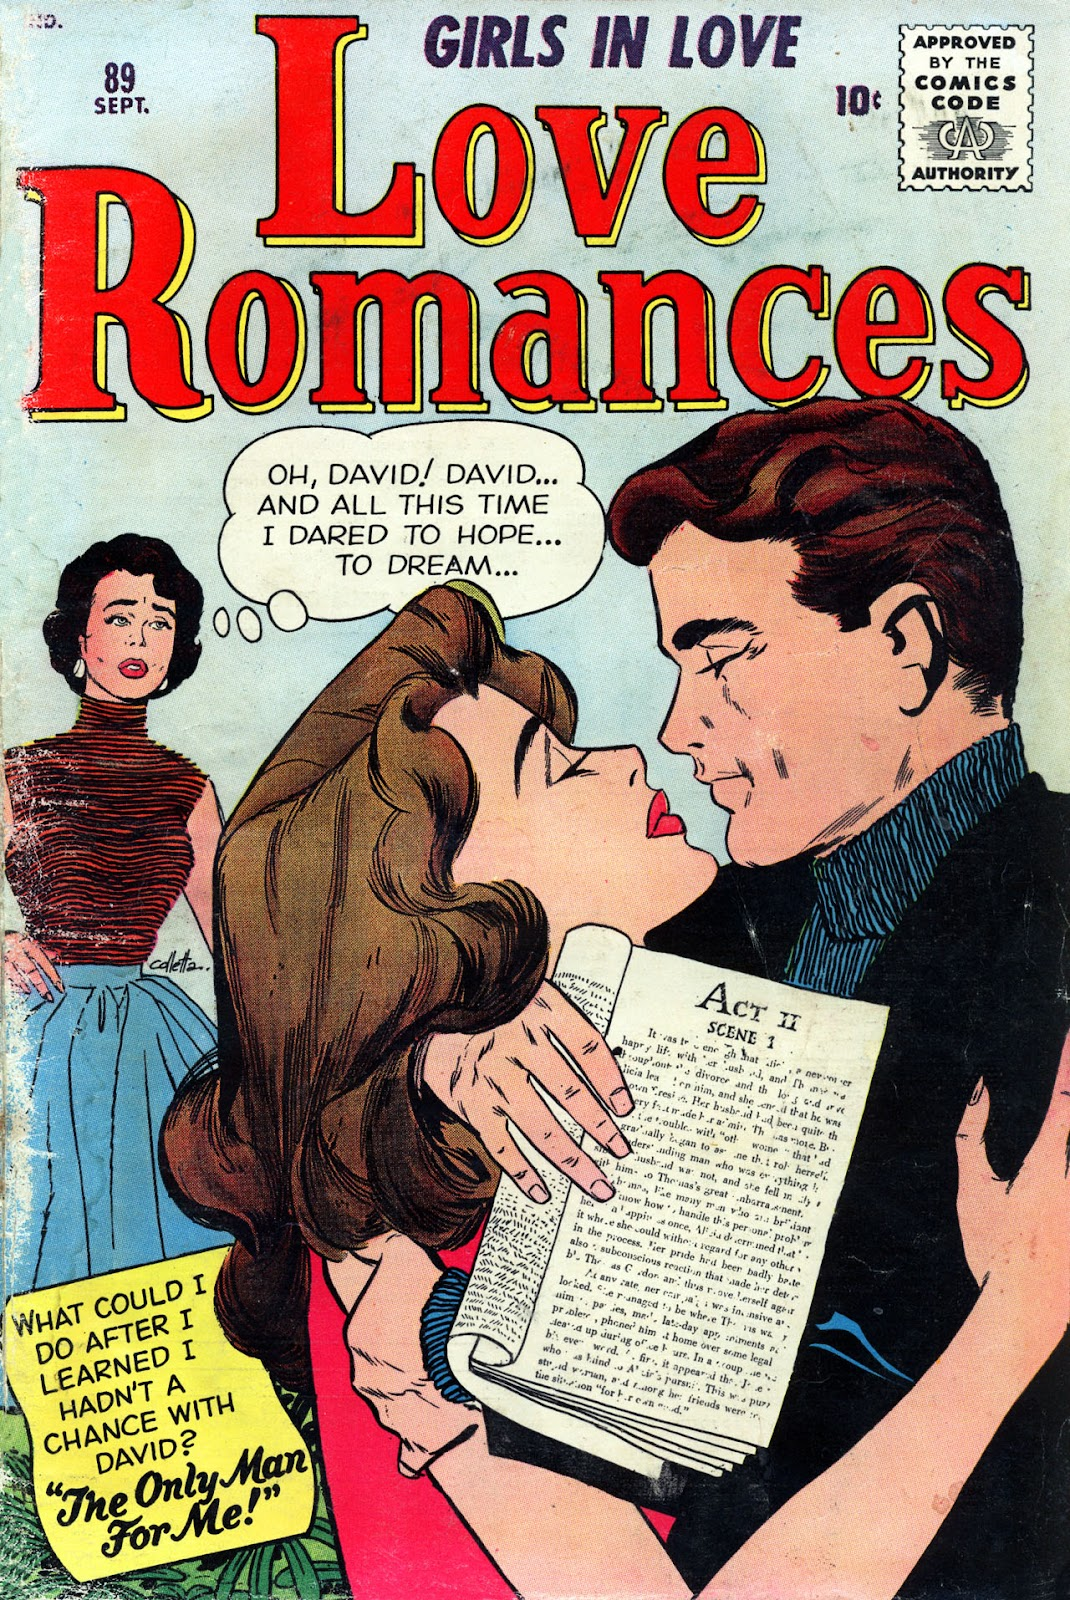 Love Romances (1949) issue 89 - Page 1